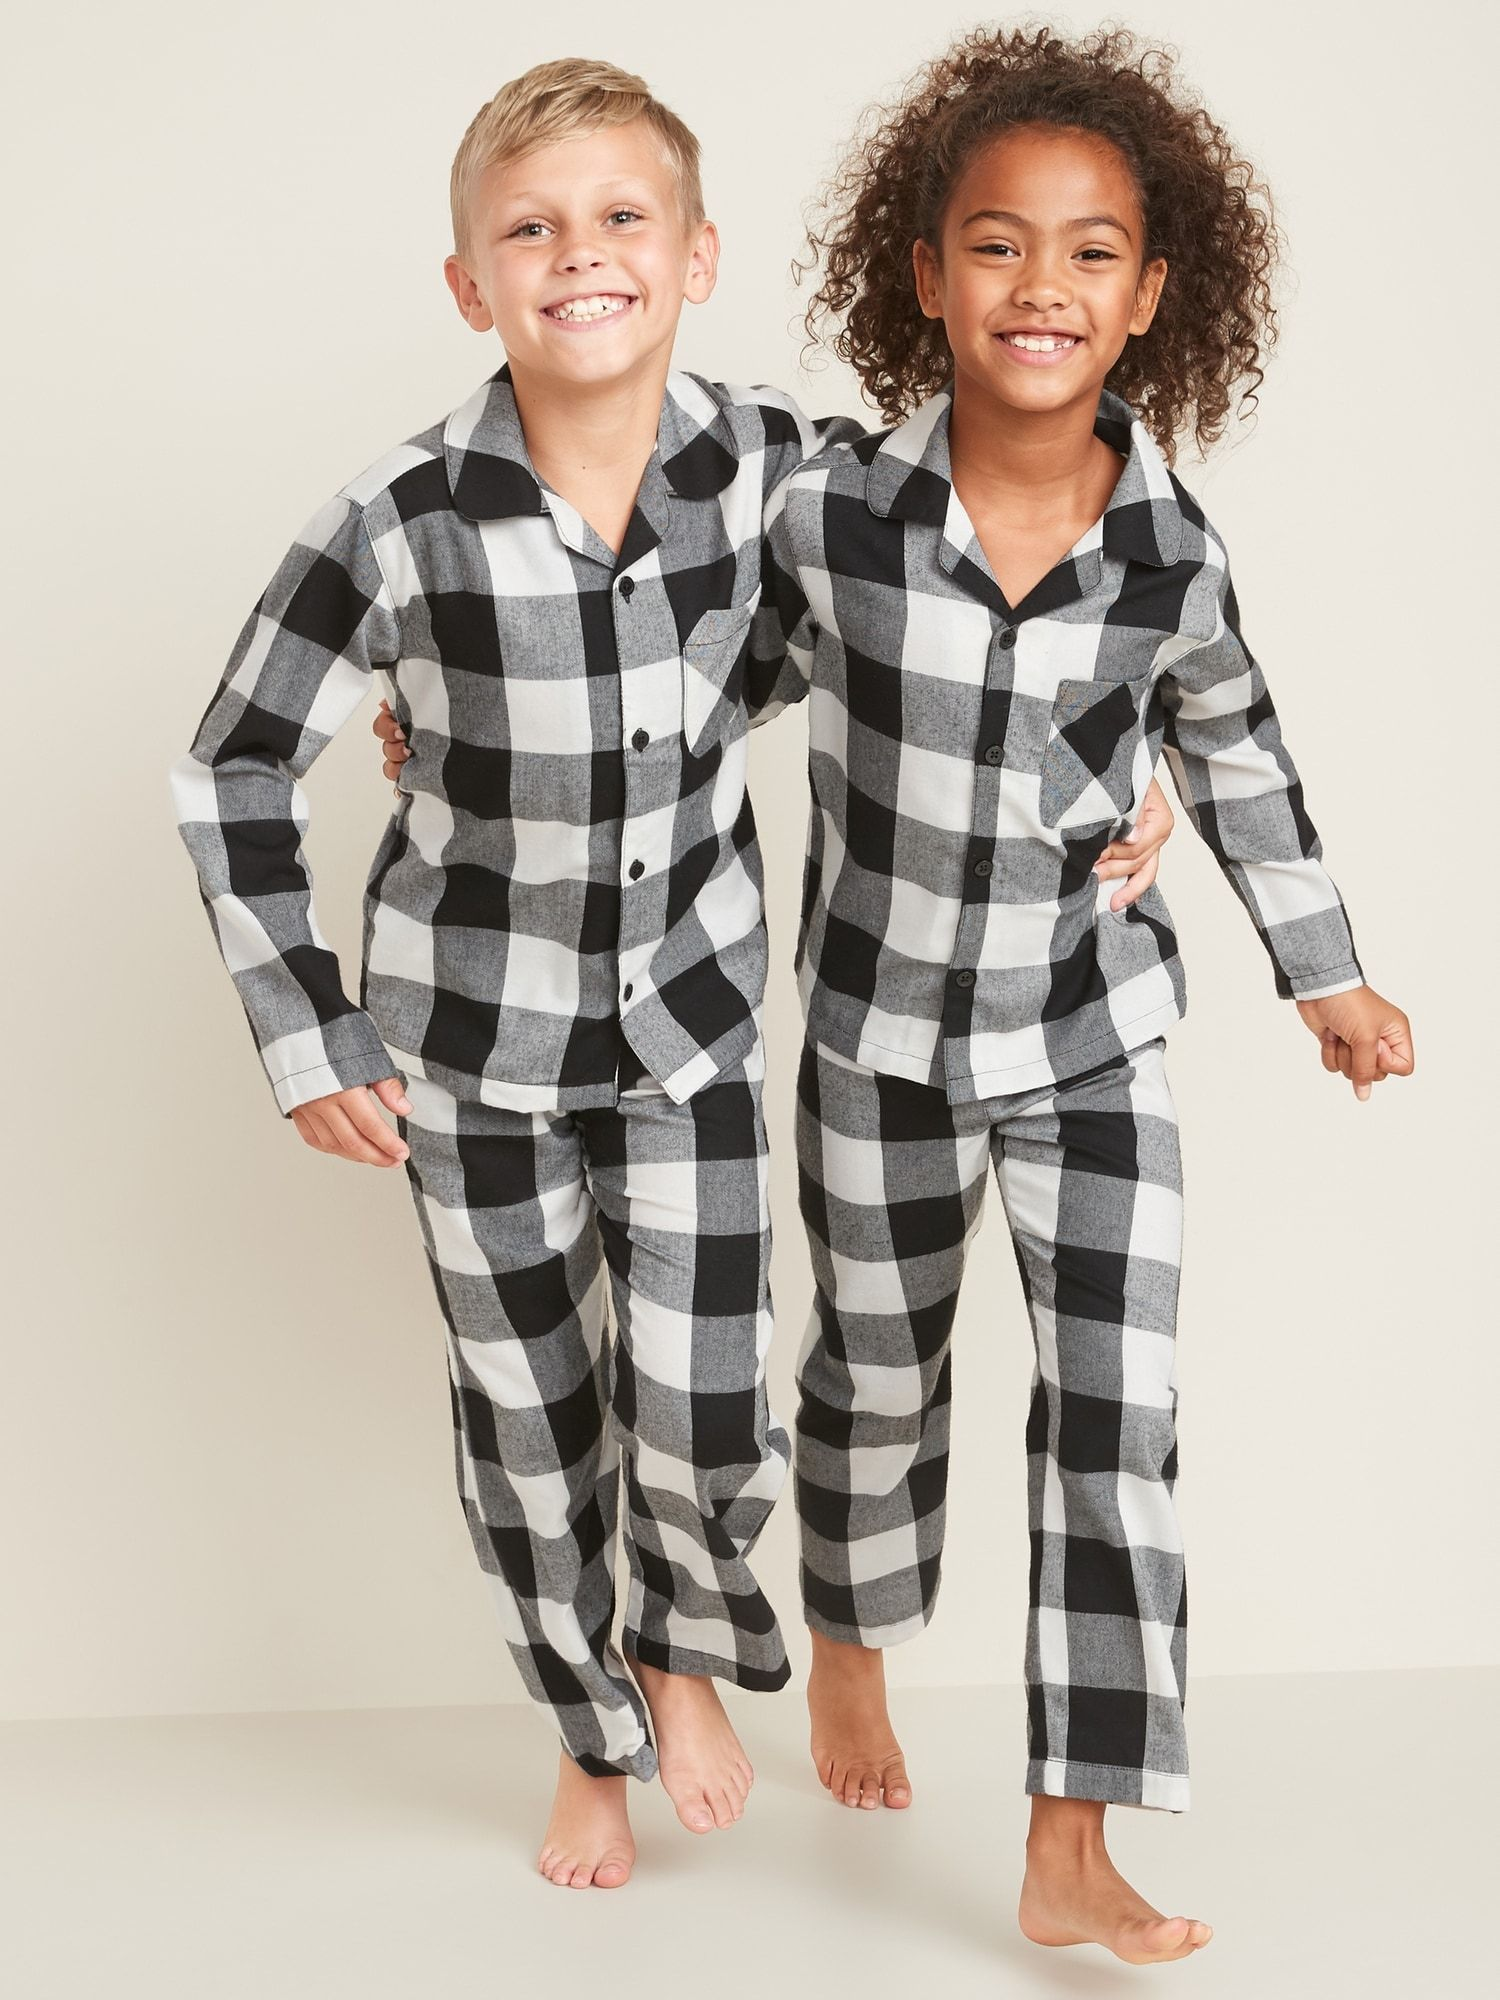 Printed Flannel Pajama Set for Kids Old Navy Flannel